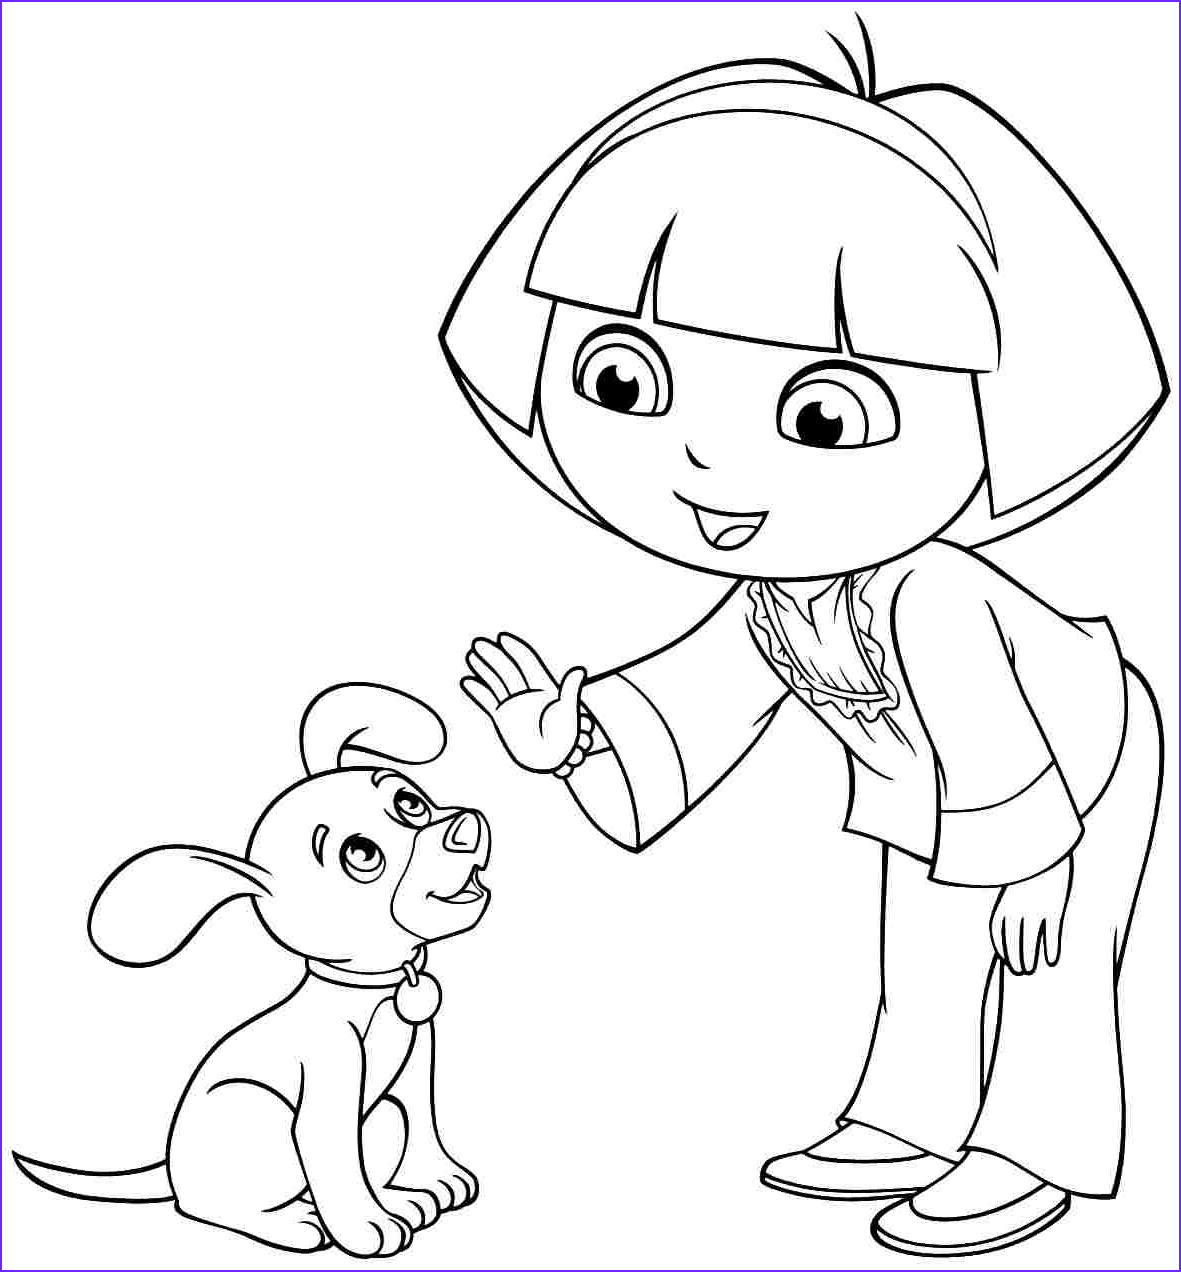 Dora Coloring Awesome Image Dora Coloring Pages